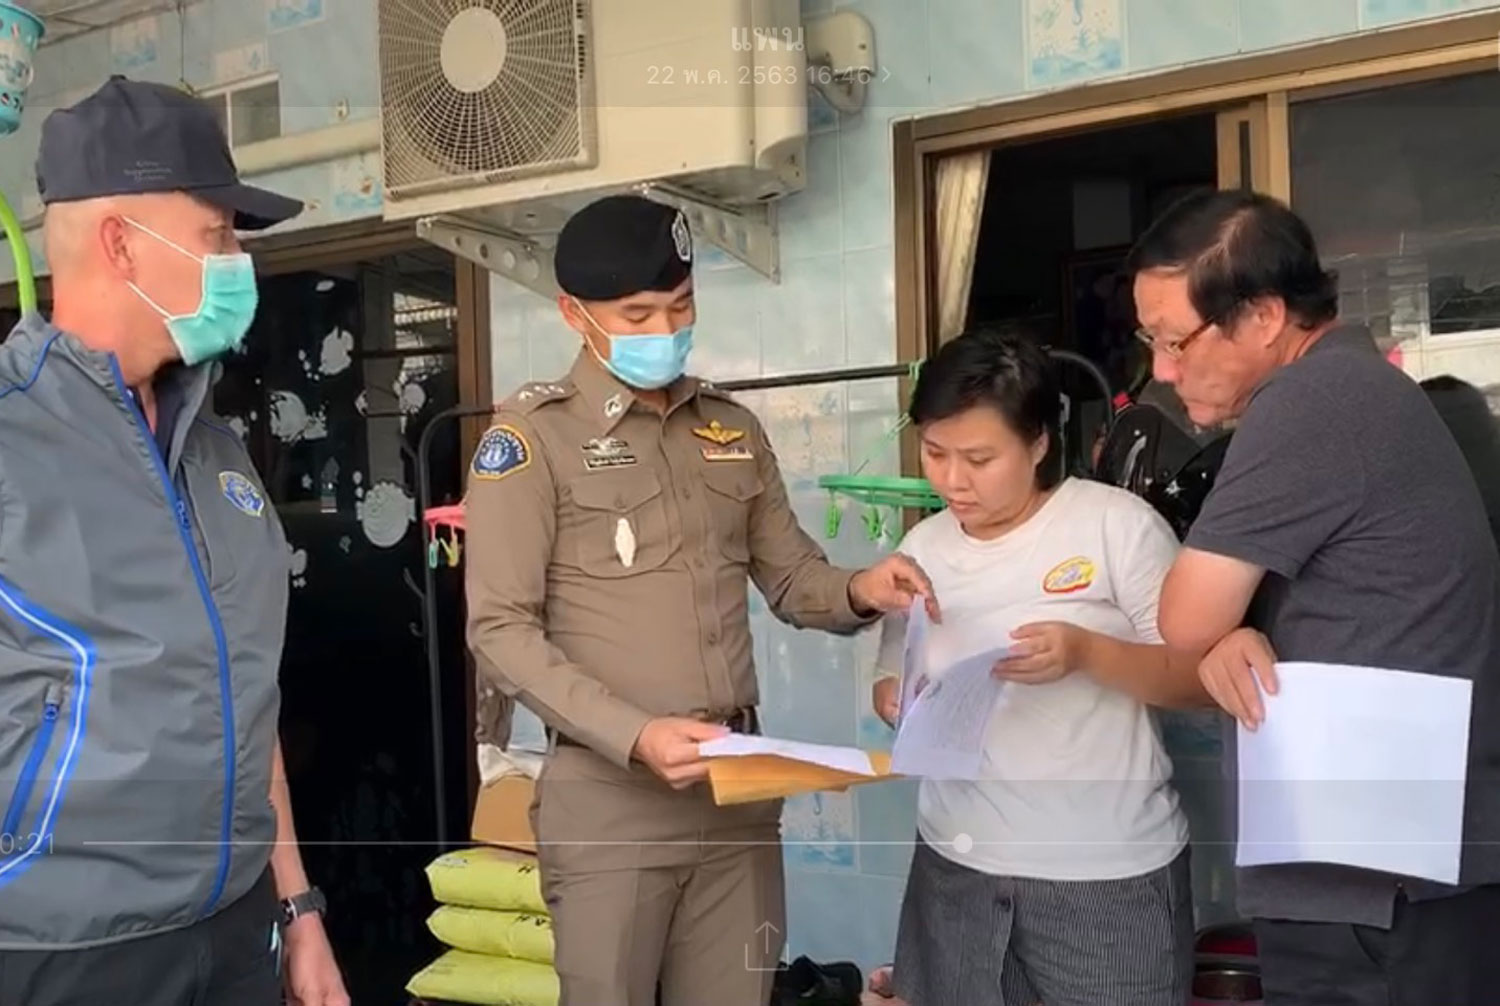 A police officer shows the arrest warrant to a woman accused of allegedly forcing her toddler to swallow bleach to make him look sick for an online advertisement selling her products. (Crime Suppression Division photo)